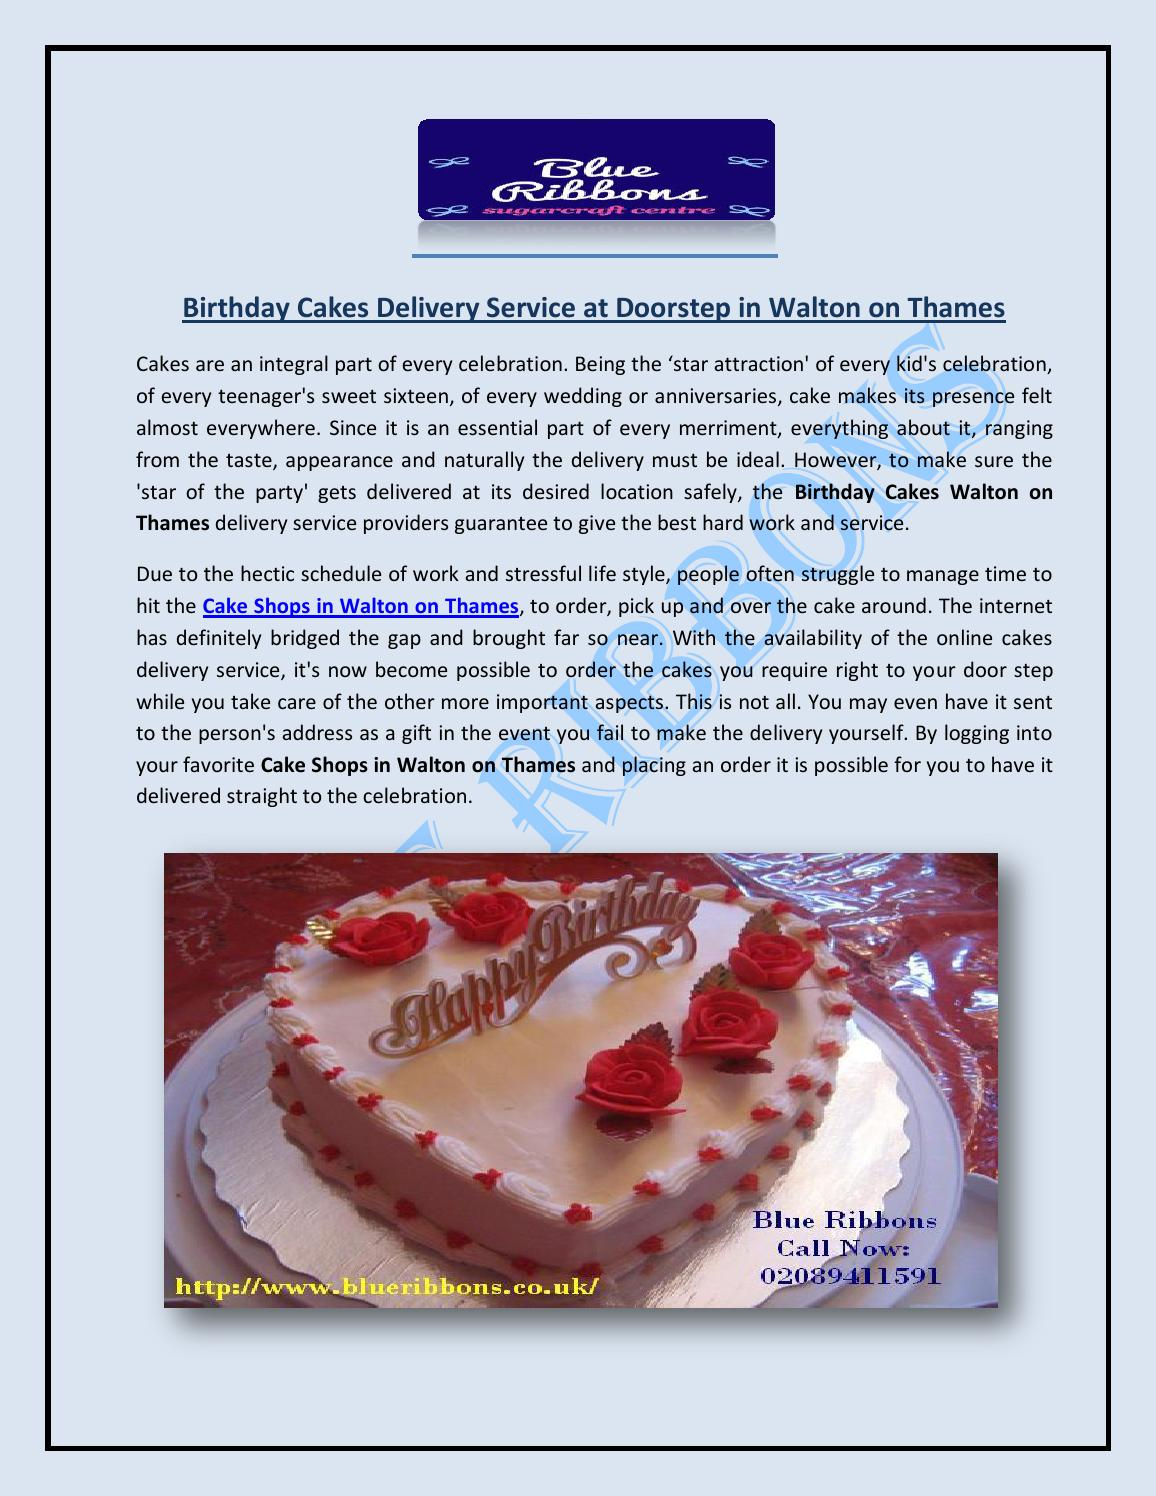 Groovy Birthday Cakes Delivery Service At Doorstep In Walton On Thames By Funny Birthday Cards Online Inifodamsfinfo